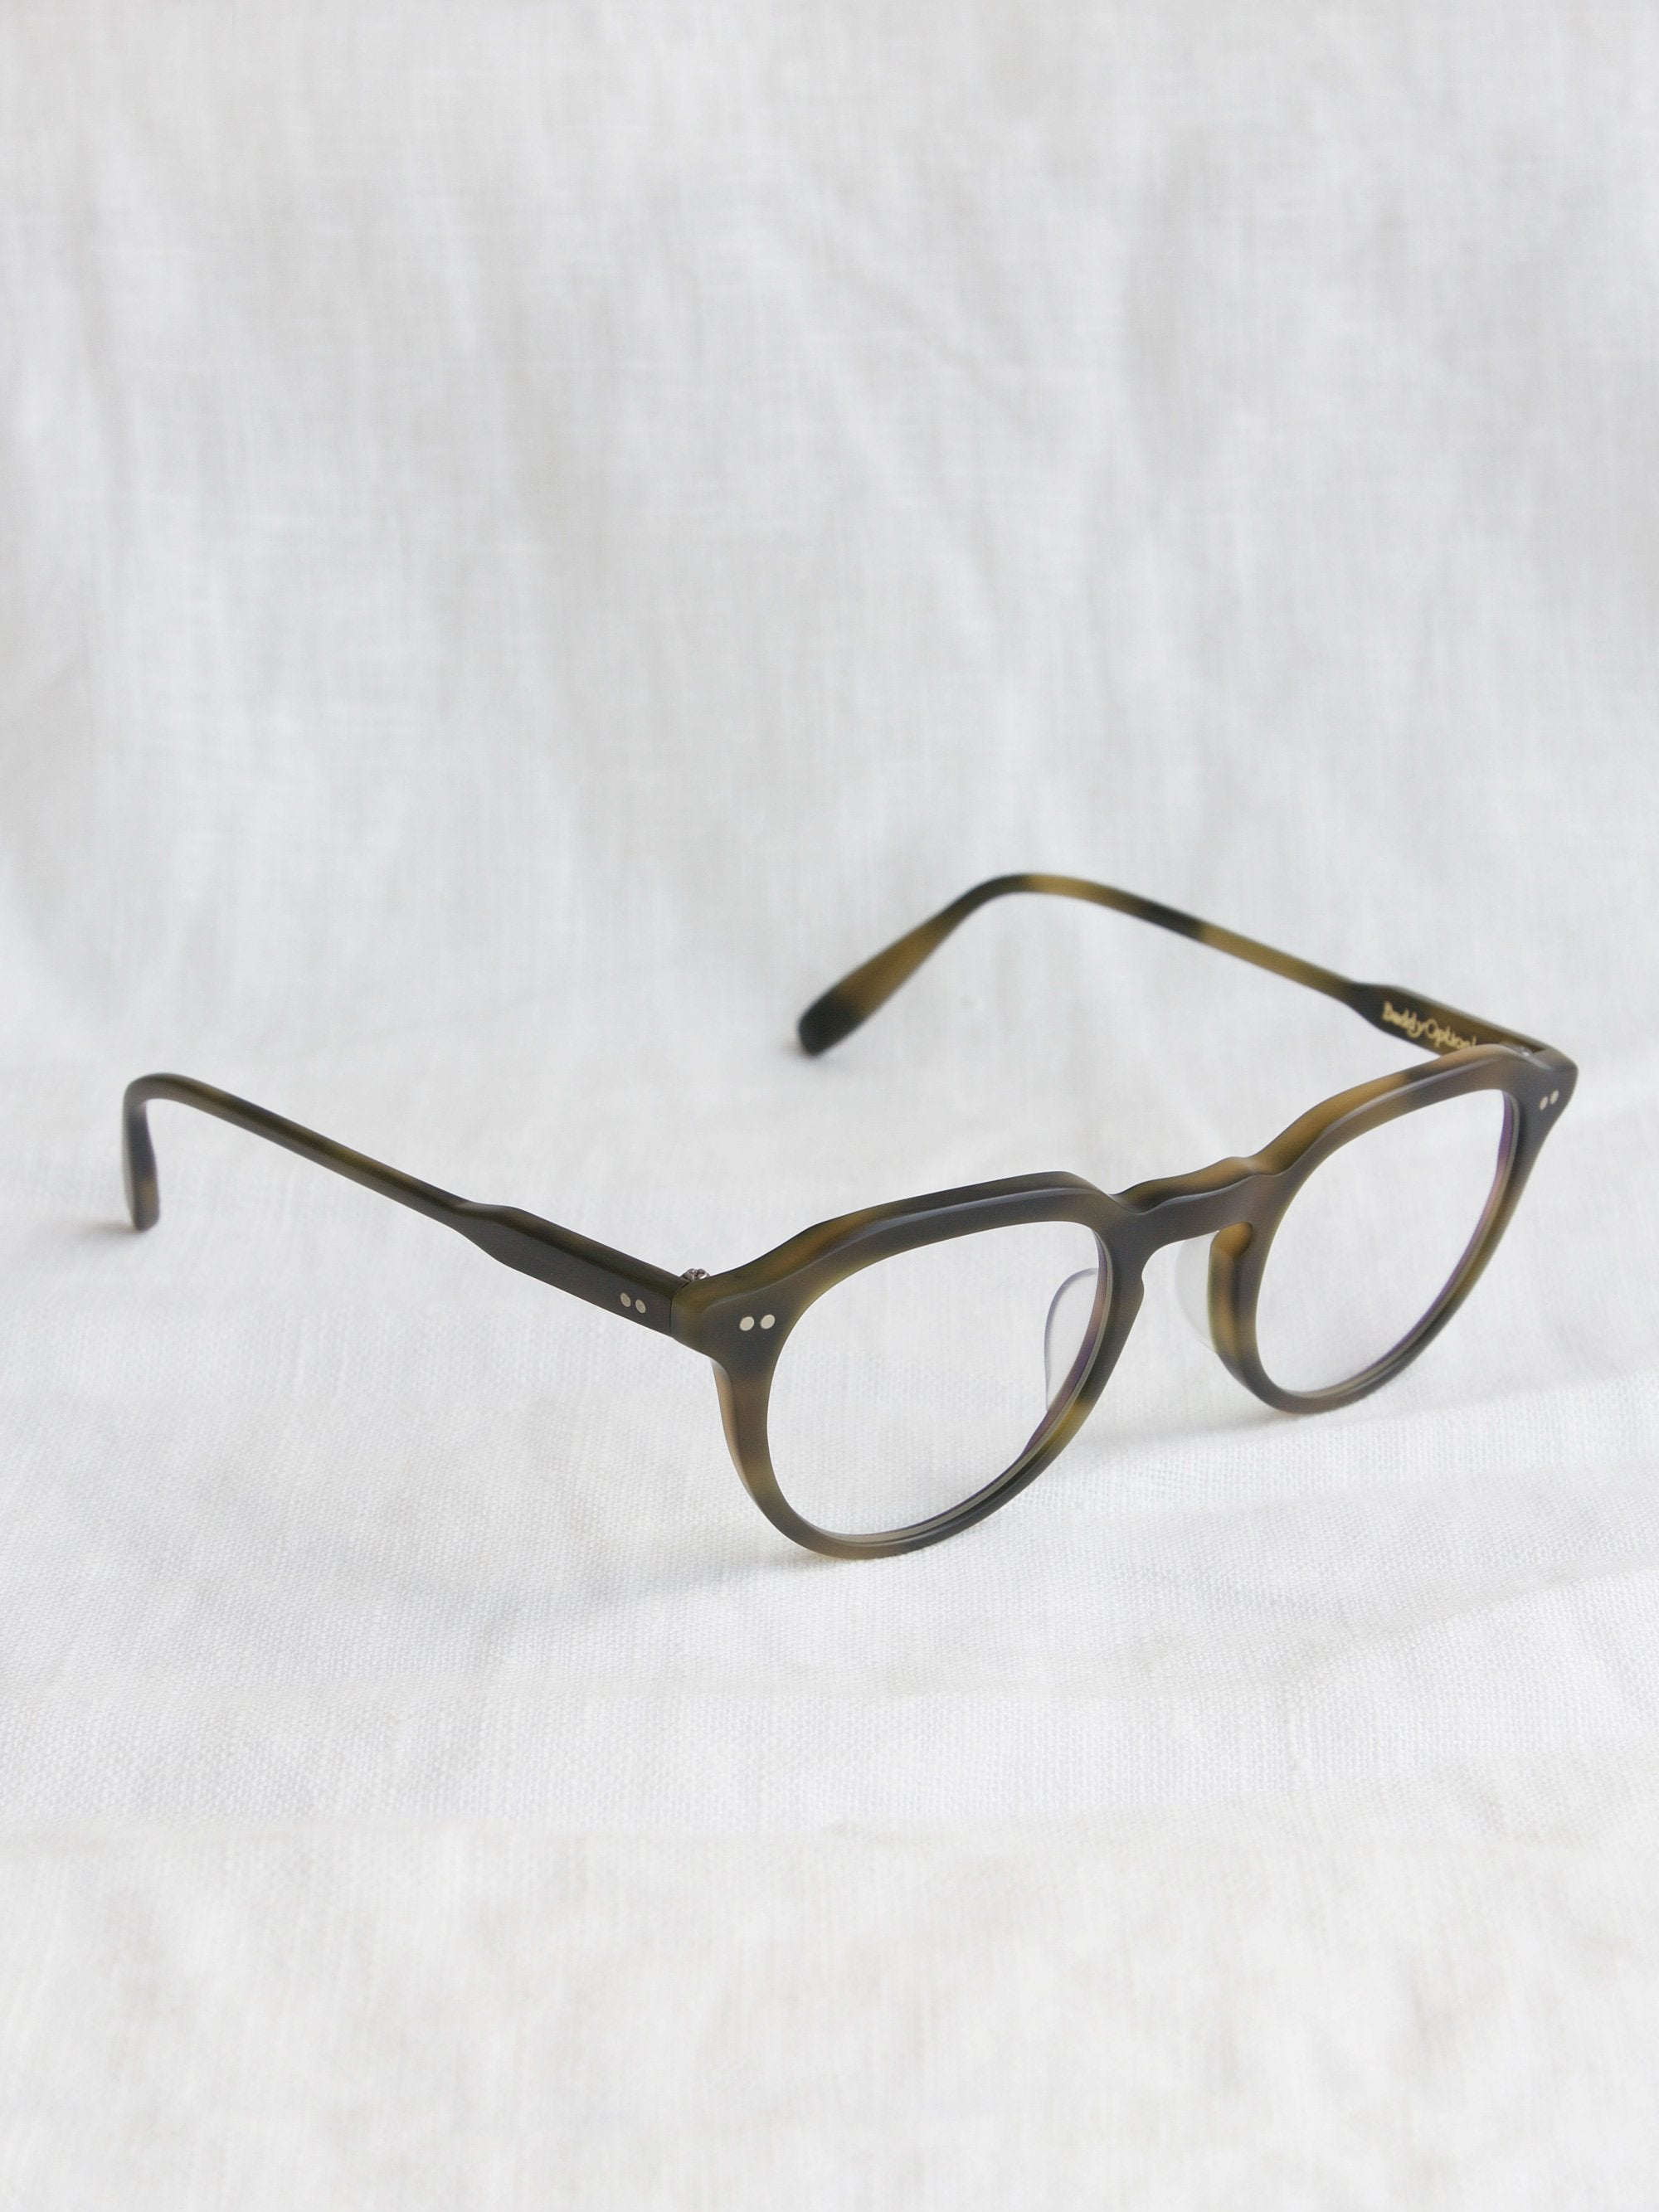 Namu Shop - Buddy Optical Sorbonne - Dark Forest